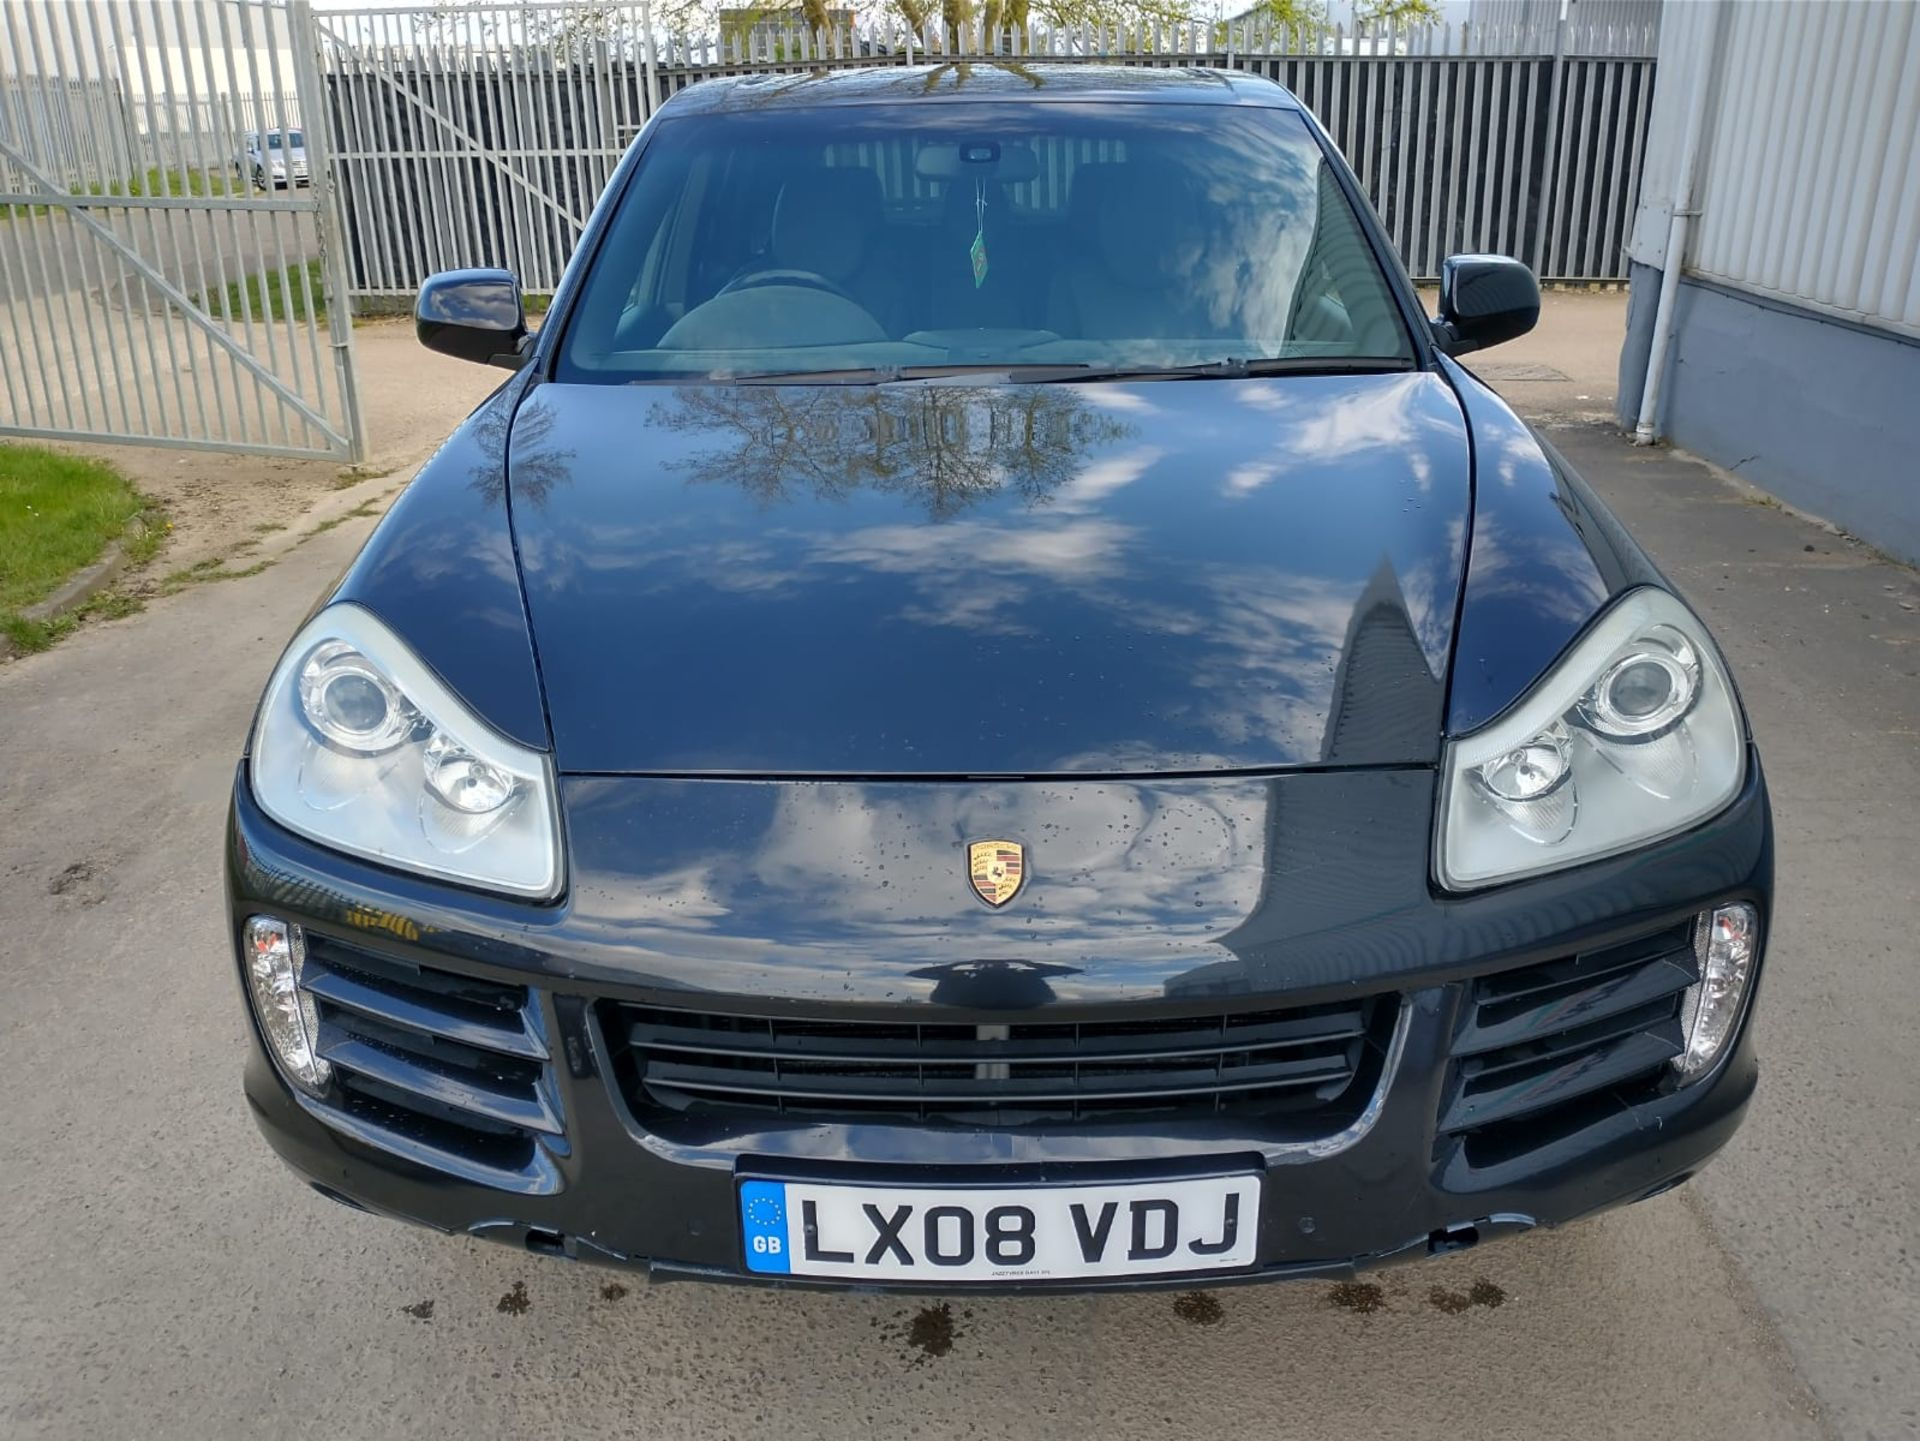 2008 Porsche Cayenne Tiptronic 3.6 5Dr SUV - CL505 - NO VAT ON THE HAMMER - Location: Corby, Northam - Image 12 of 16